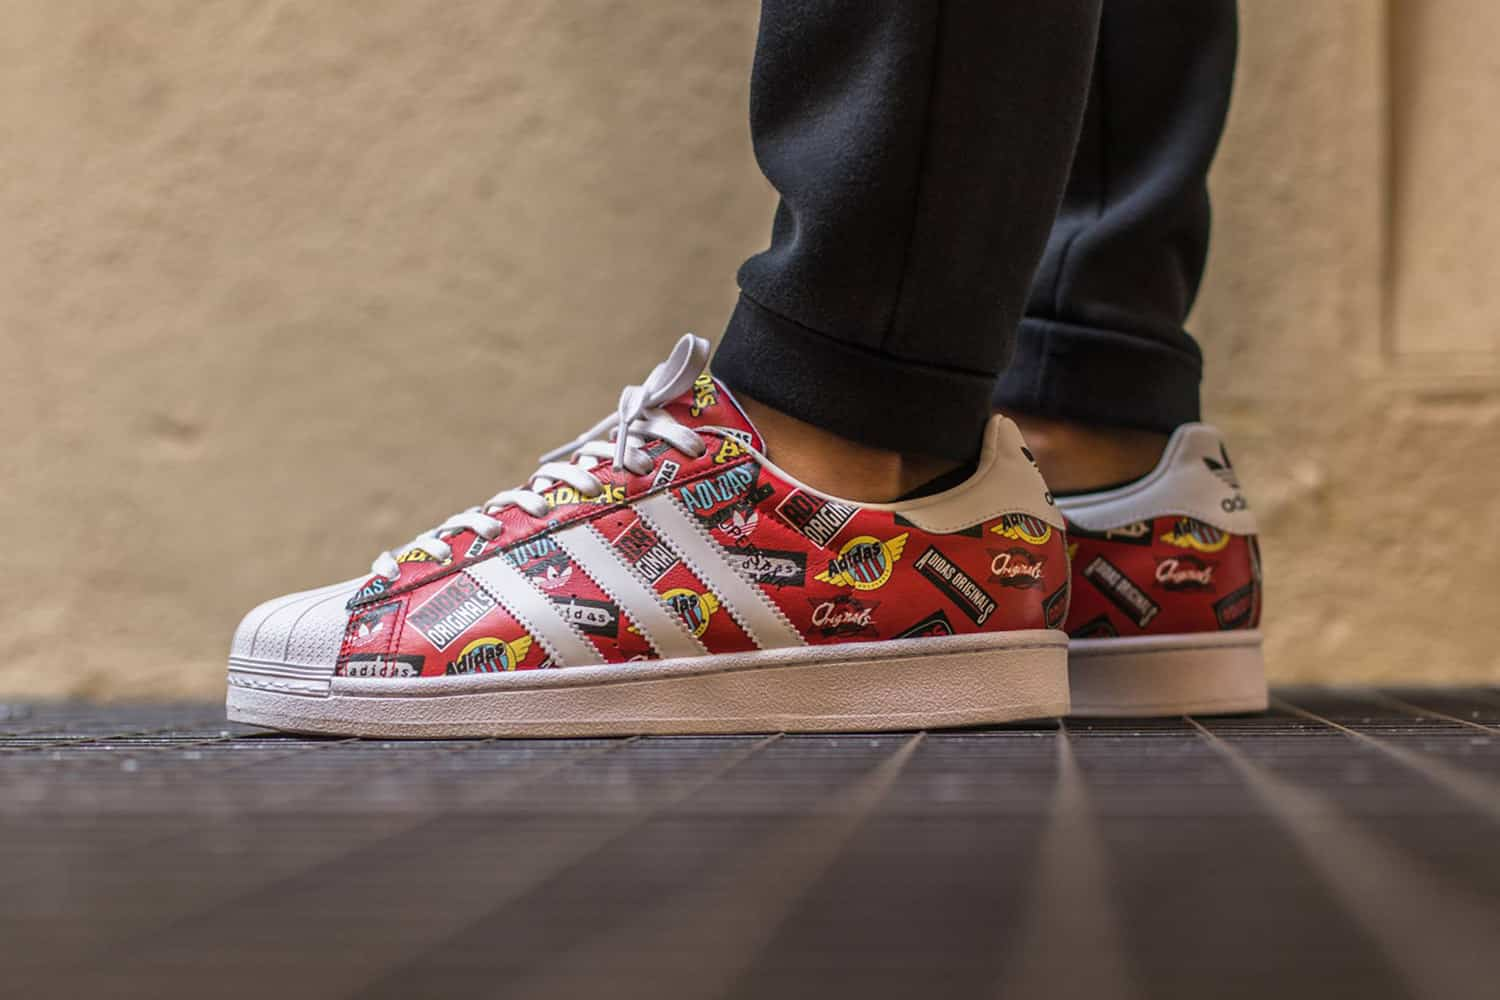 nigo-adidas-originals-superstar-all-over-print-01